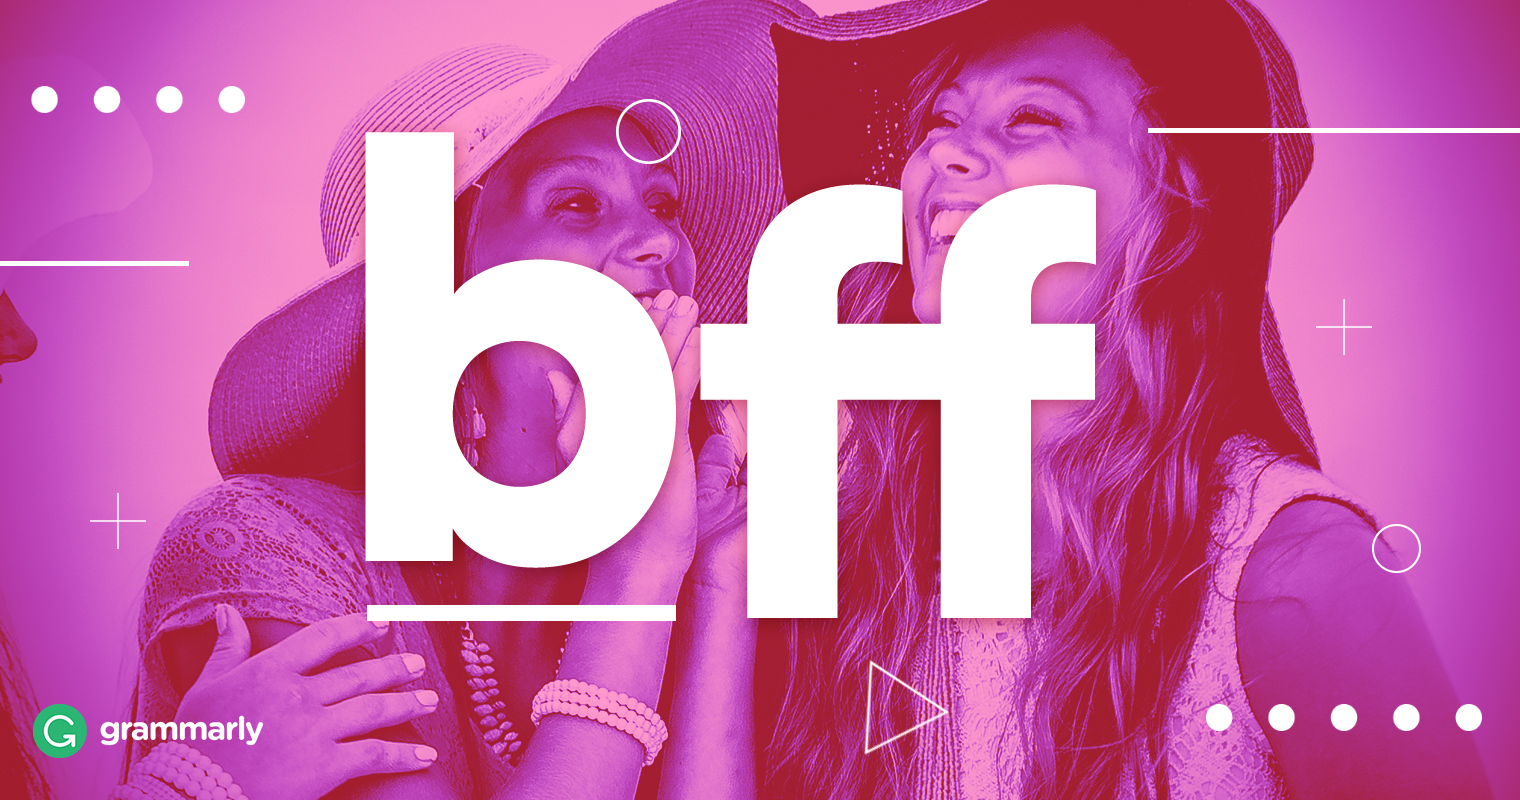 What Does Bff Mean? image